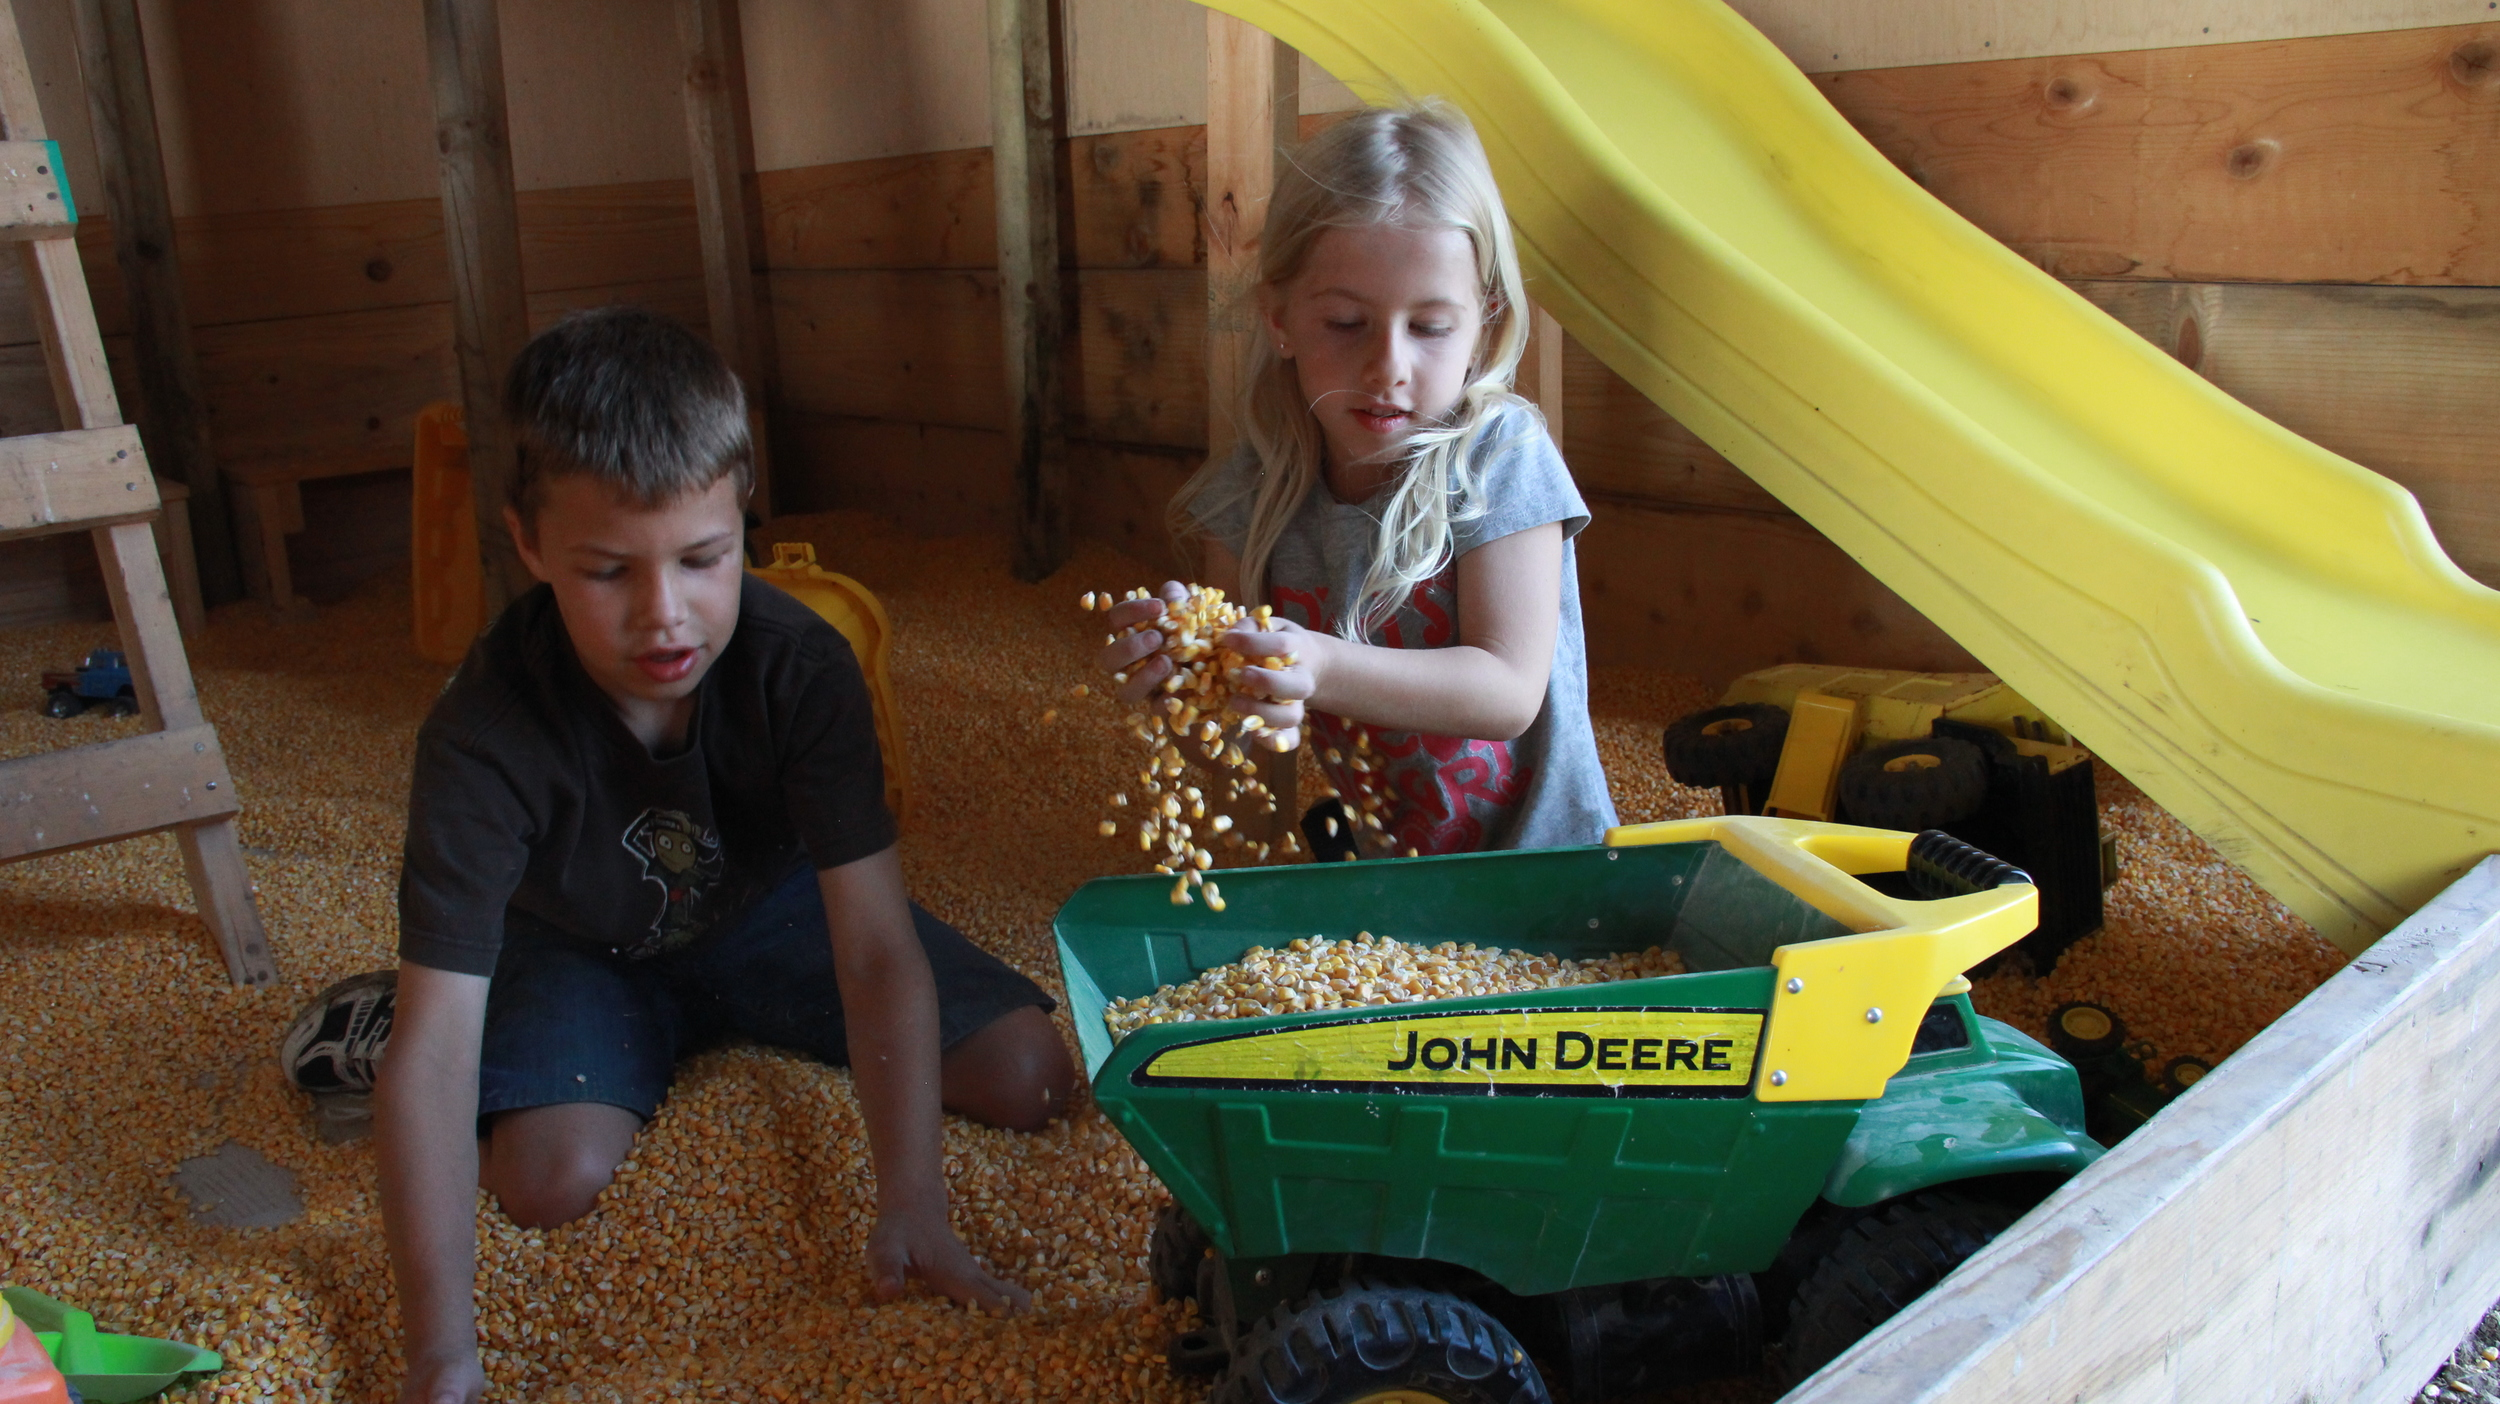 Play facilities in the Party Shed are available for young children, even preschool age.